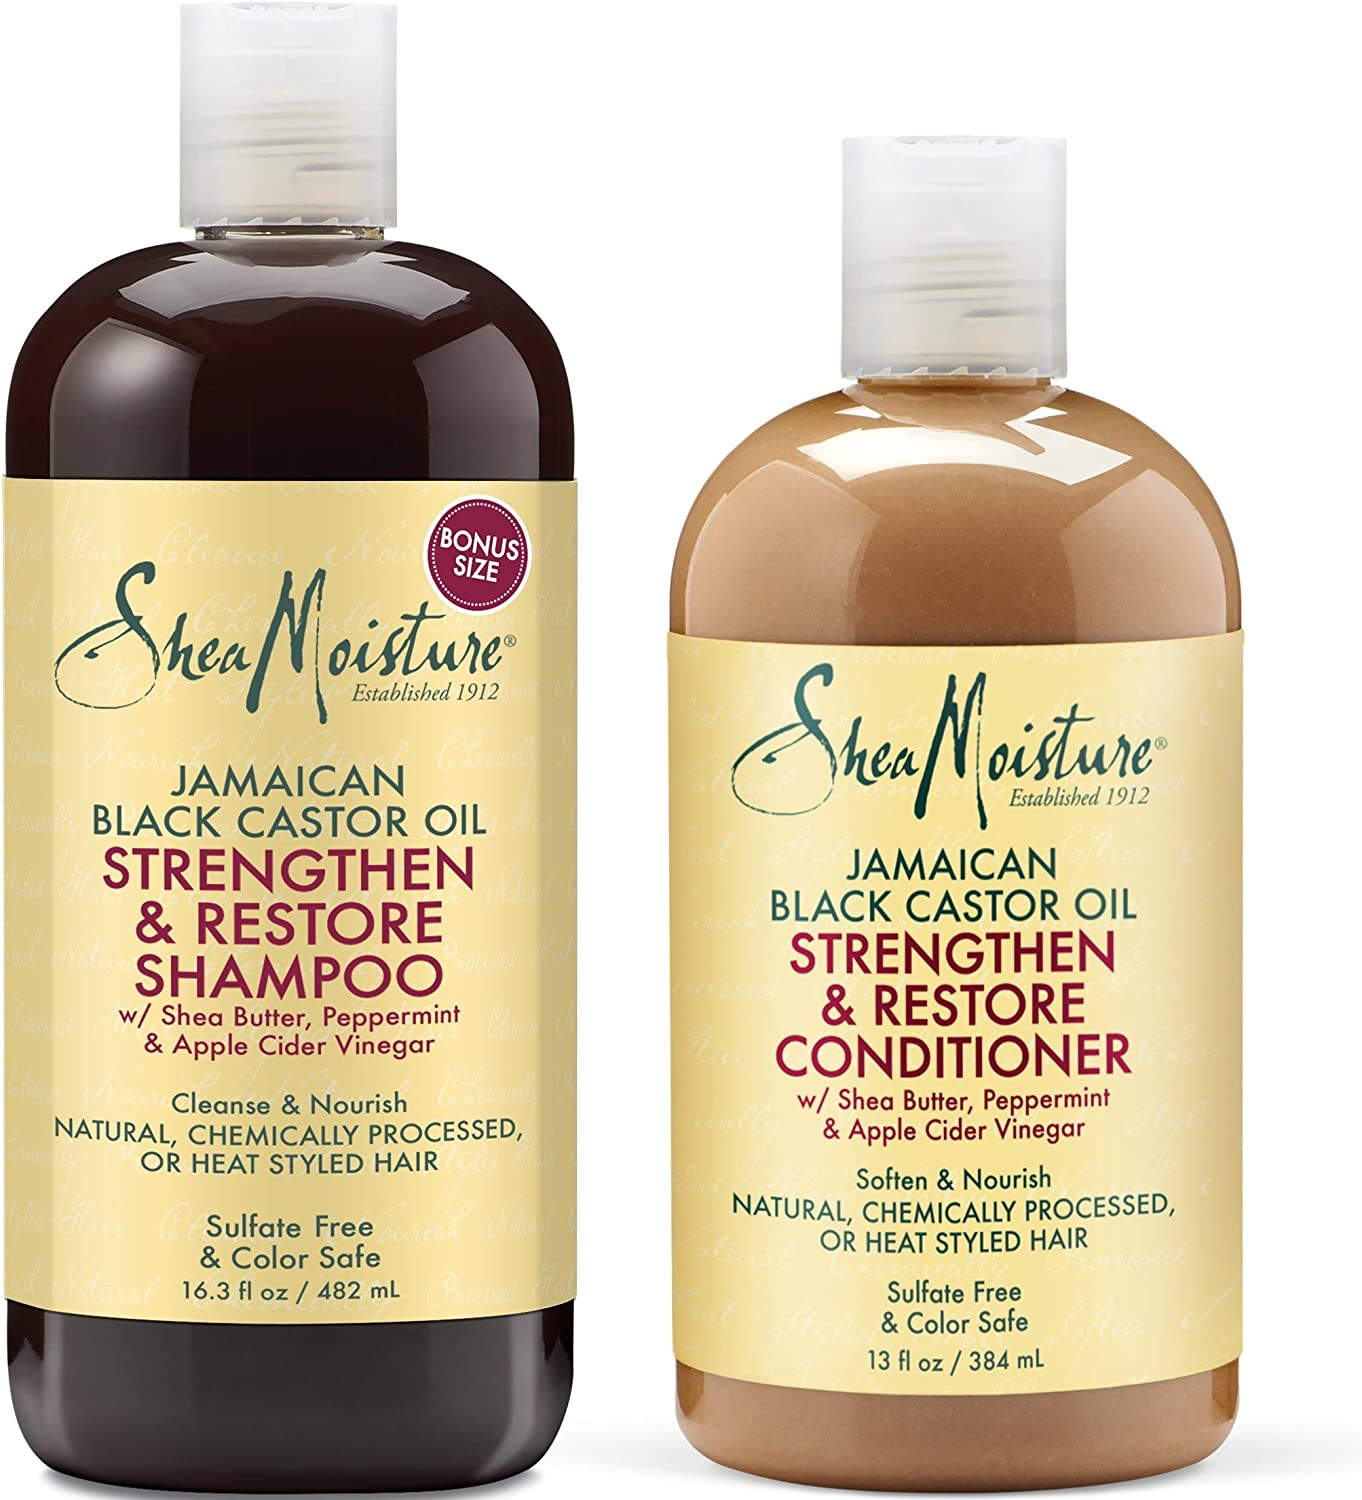 Shea Moisture Strengthen, Grow & Restore Shampoo and Conditioner Set